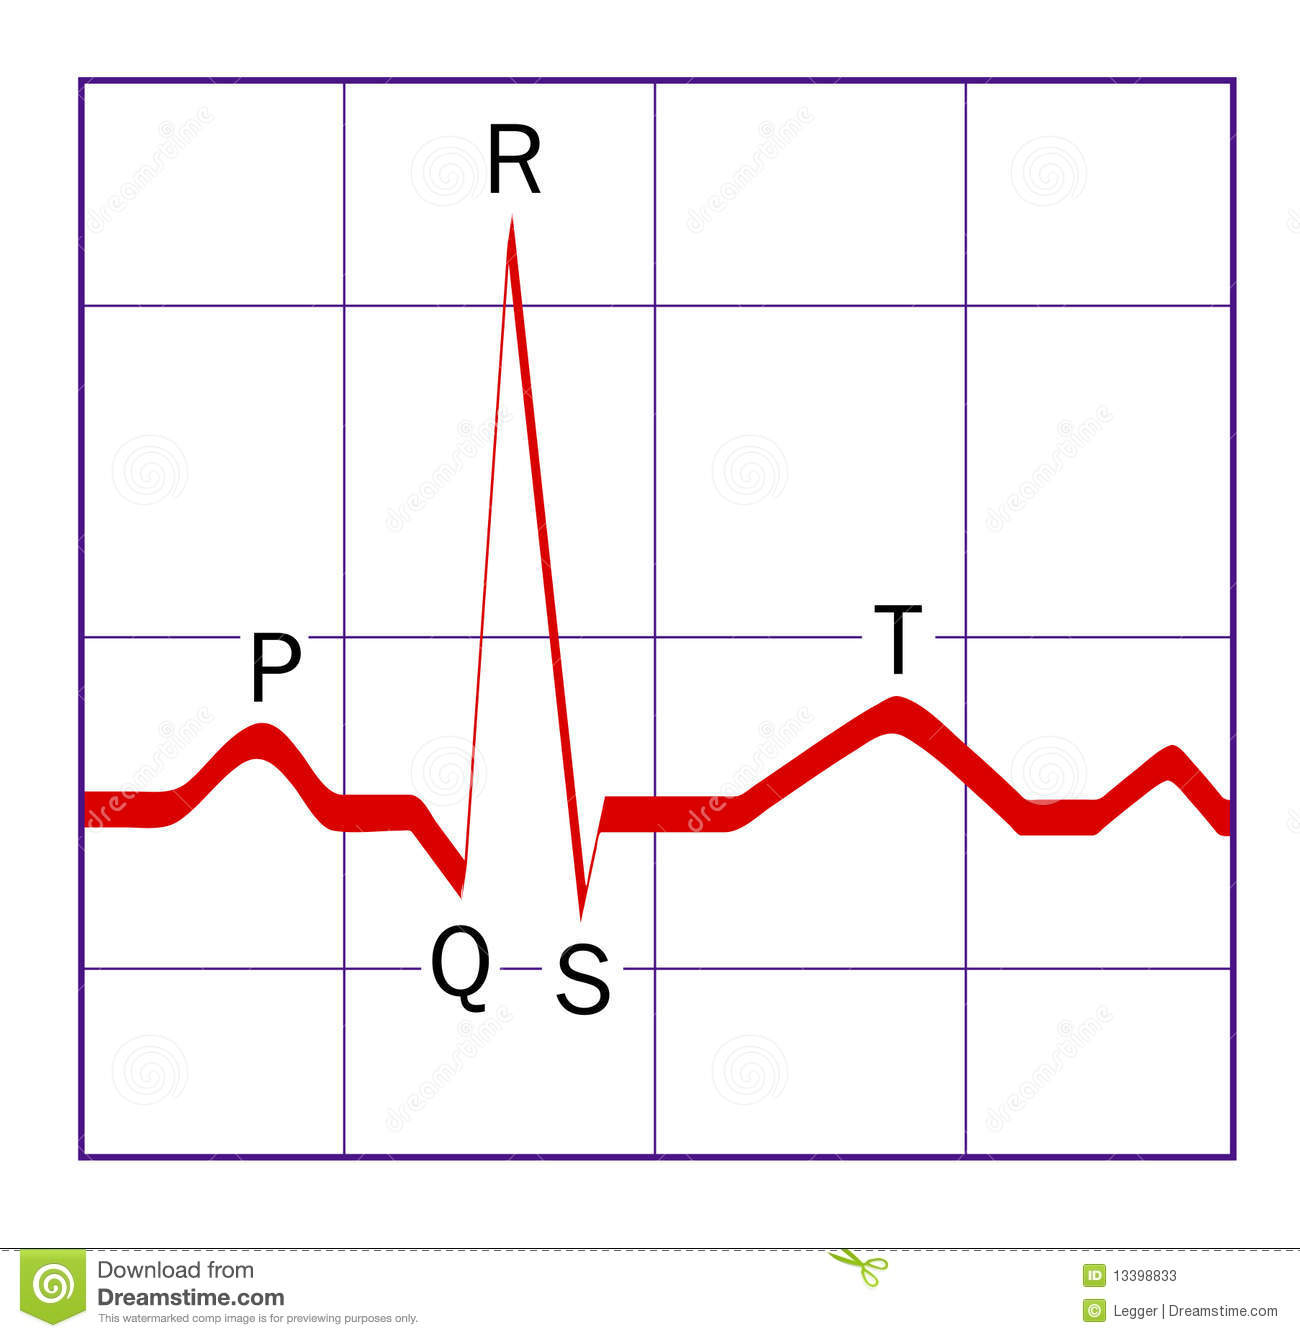 How To Draw An Ekg Tracing With Tikz